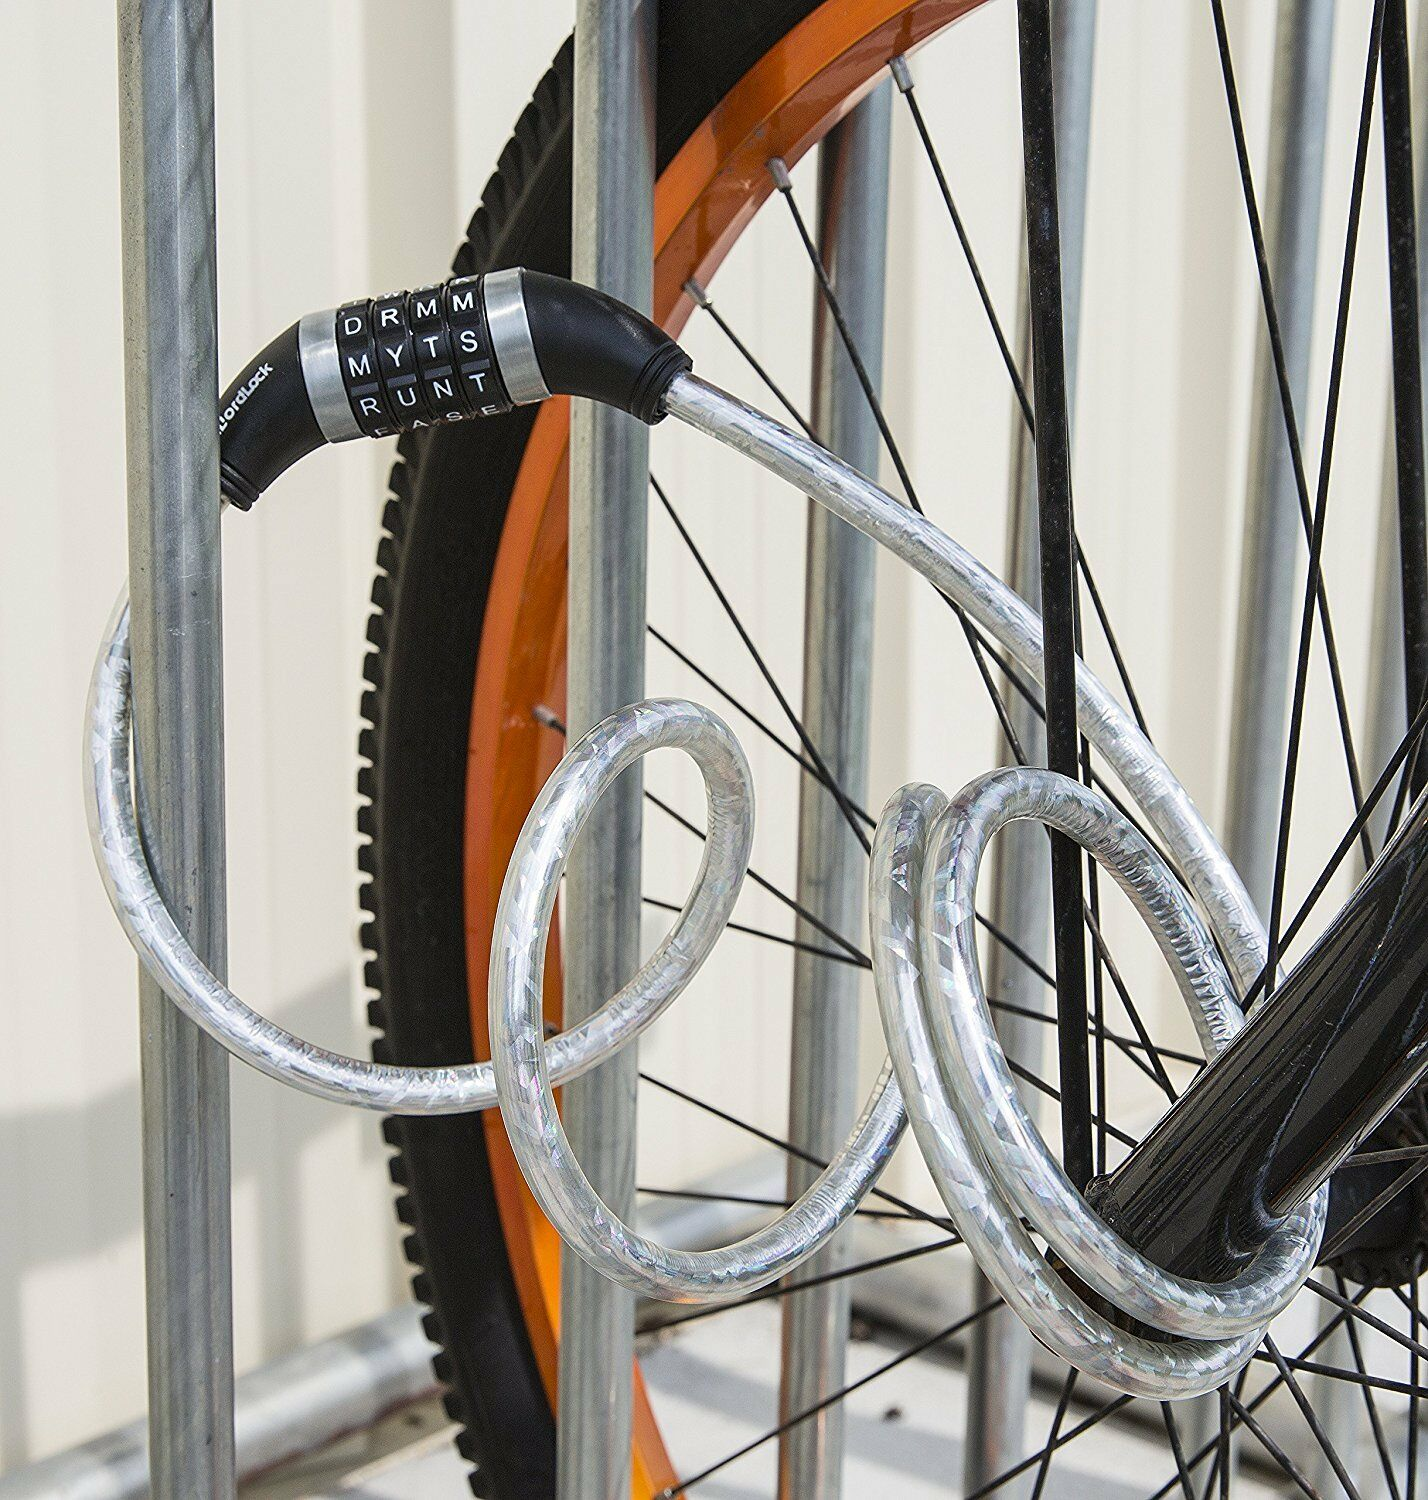 New Syneco wordlock cable lock bicycle security bike cage secure key